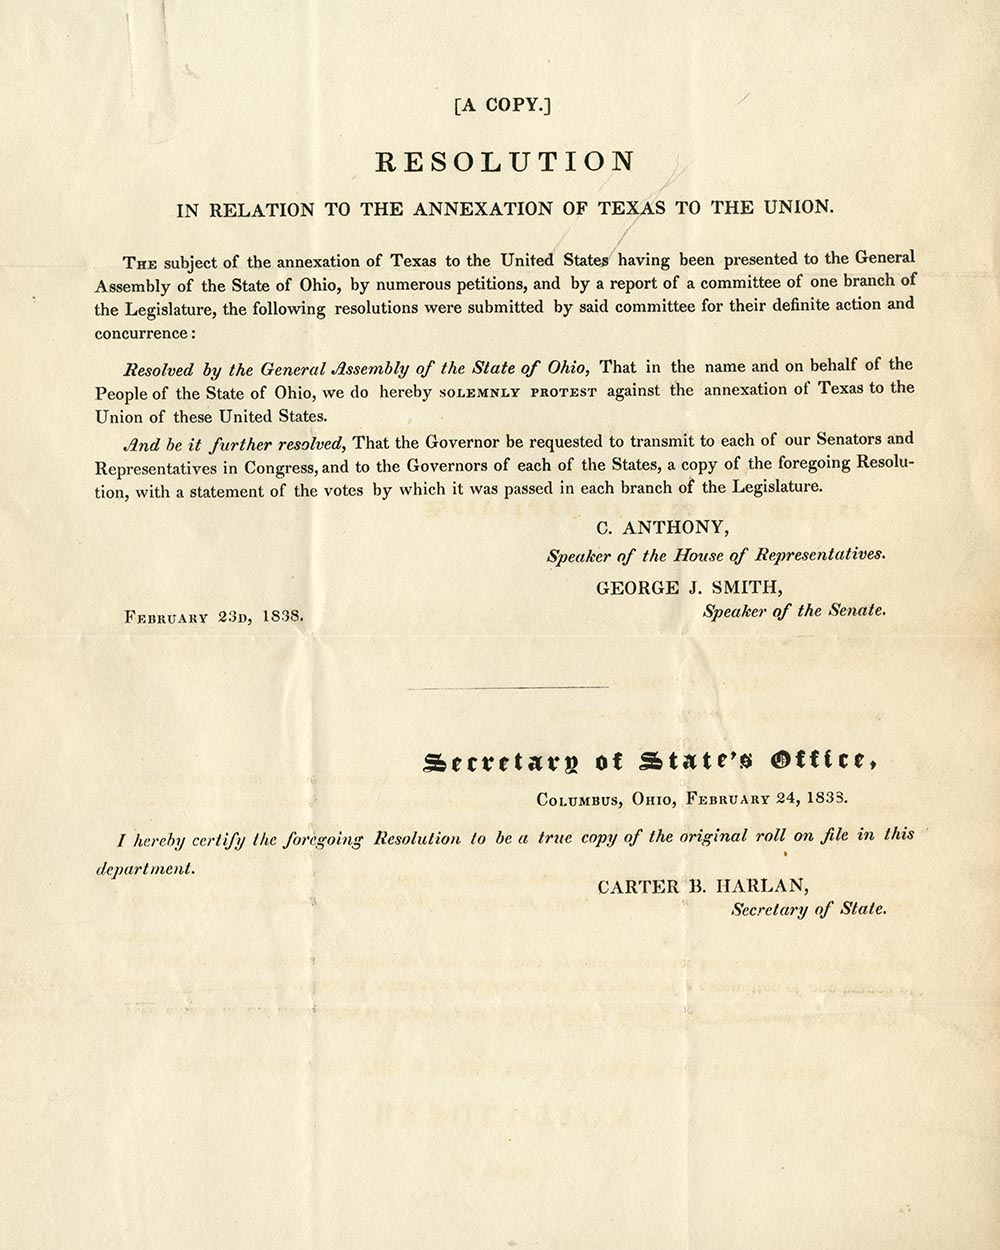 Congressional resolution on Texas annexation